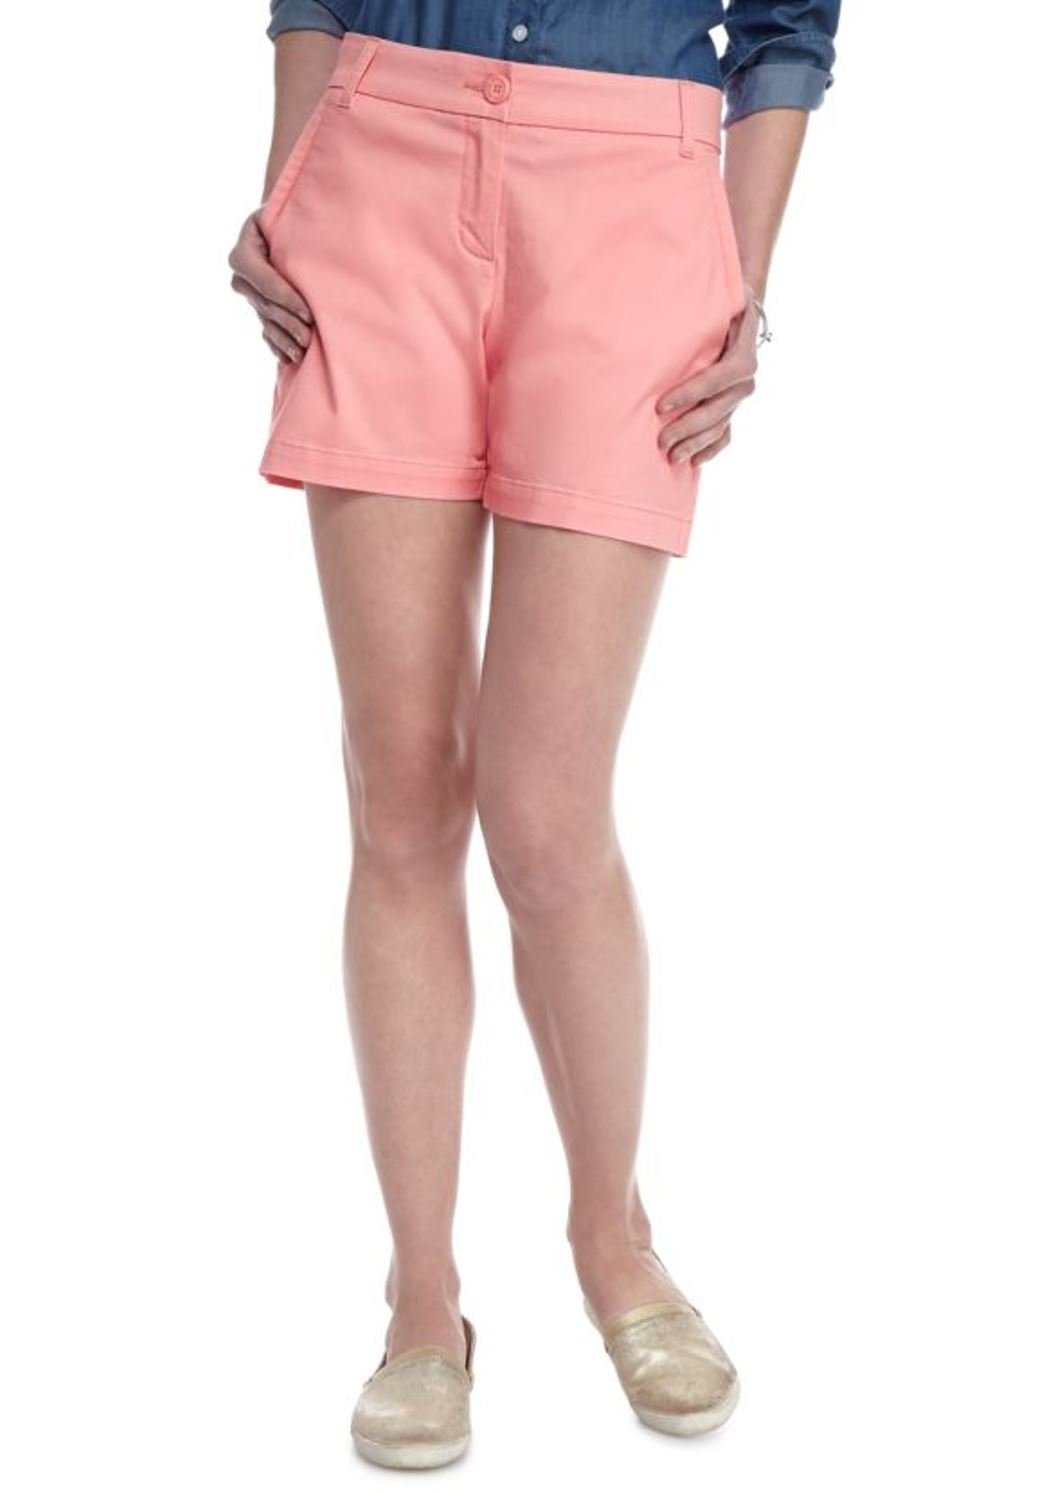 Crown & Ivy Women's Petite Solid 5-In. Short (Coral Aura, 0P)